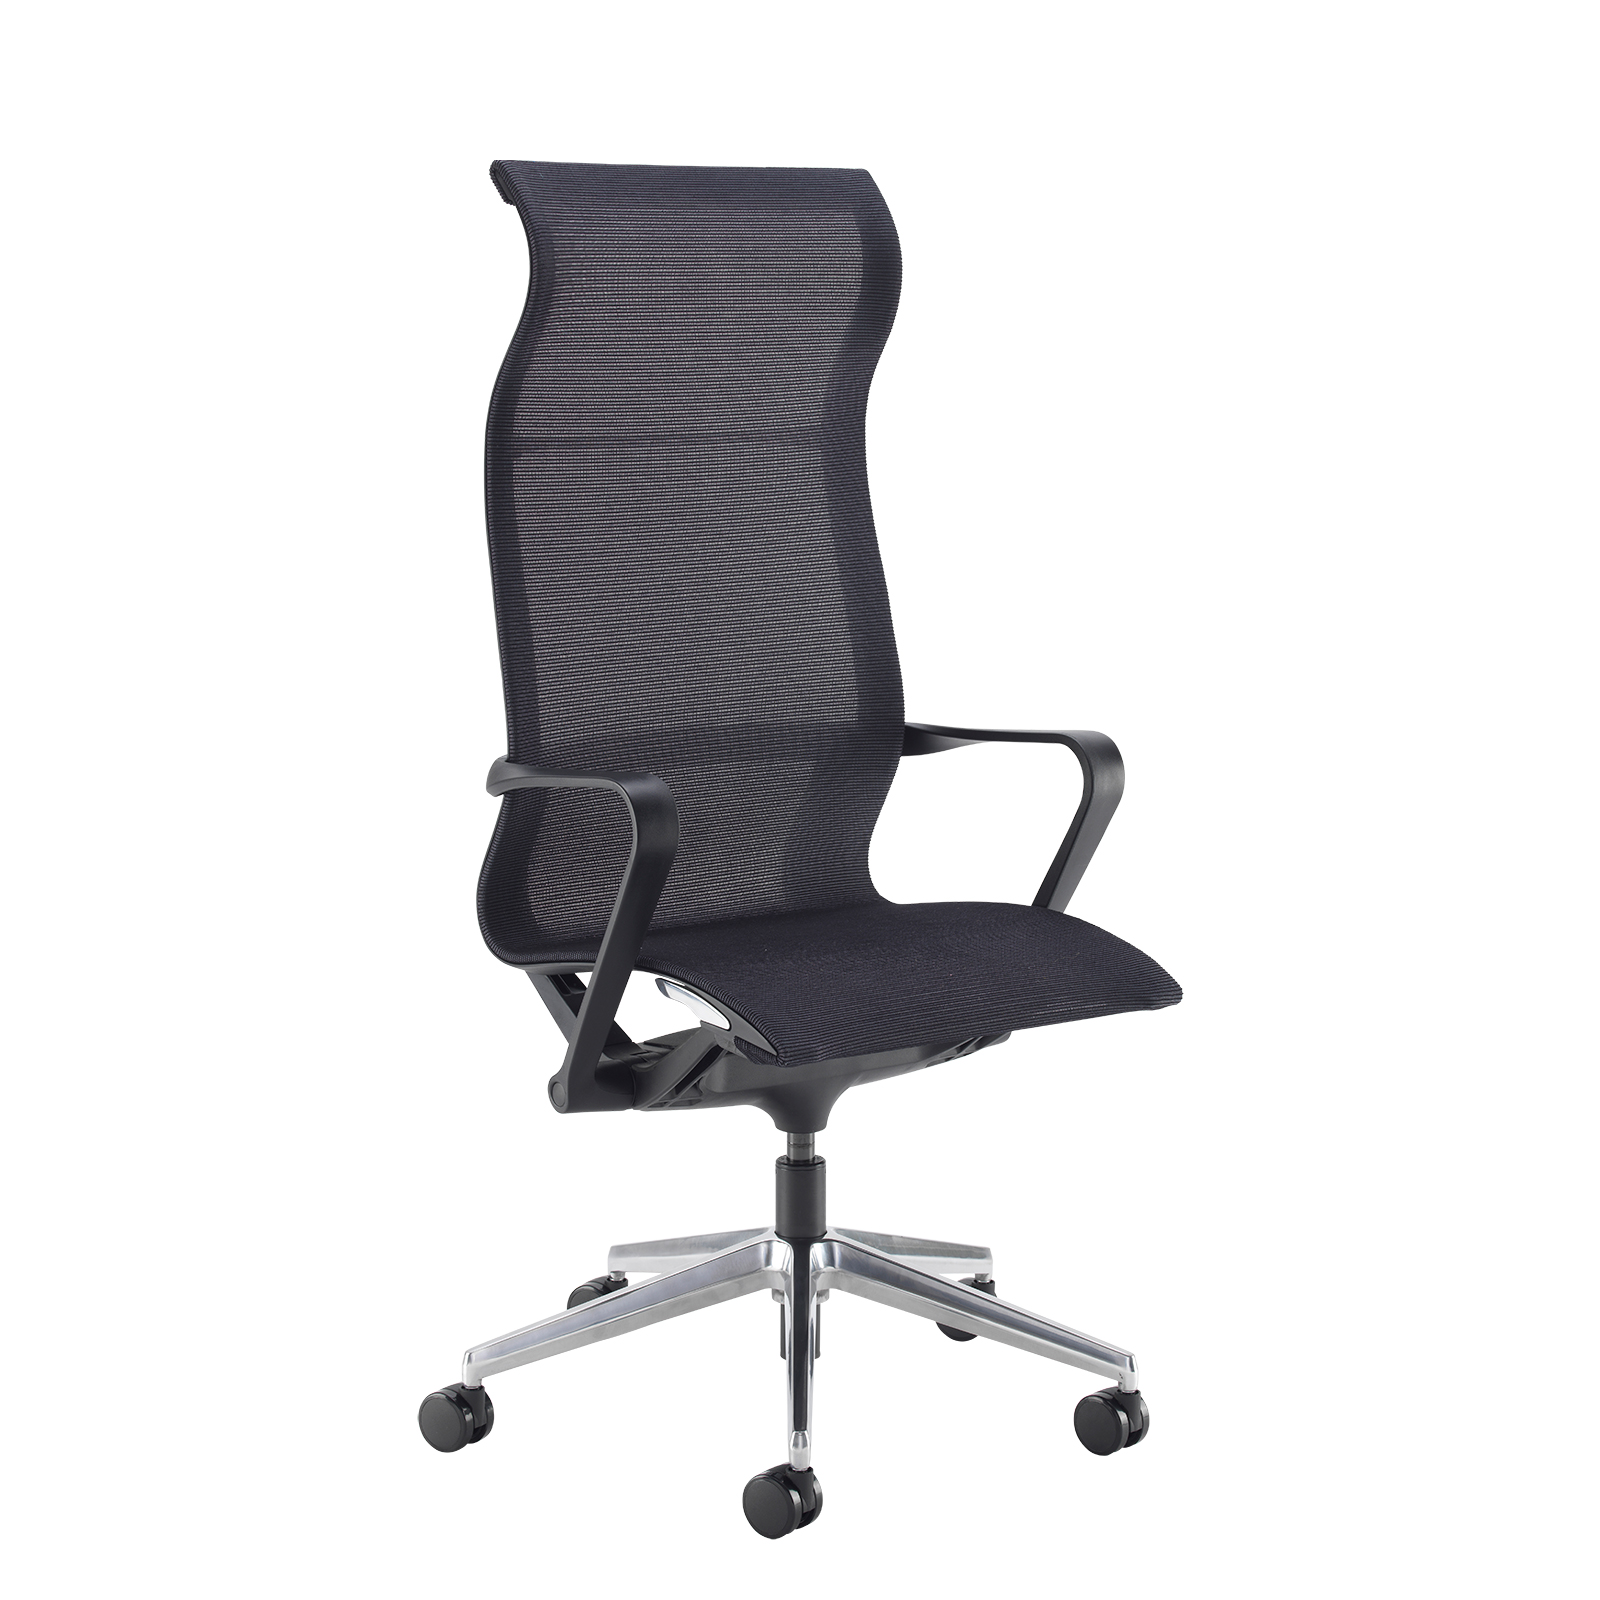 Lola high back designer operators chair with black mesh and black frame and aluminium base